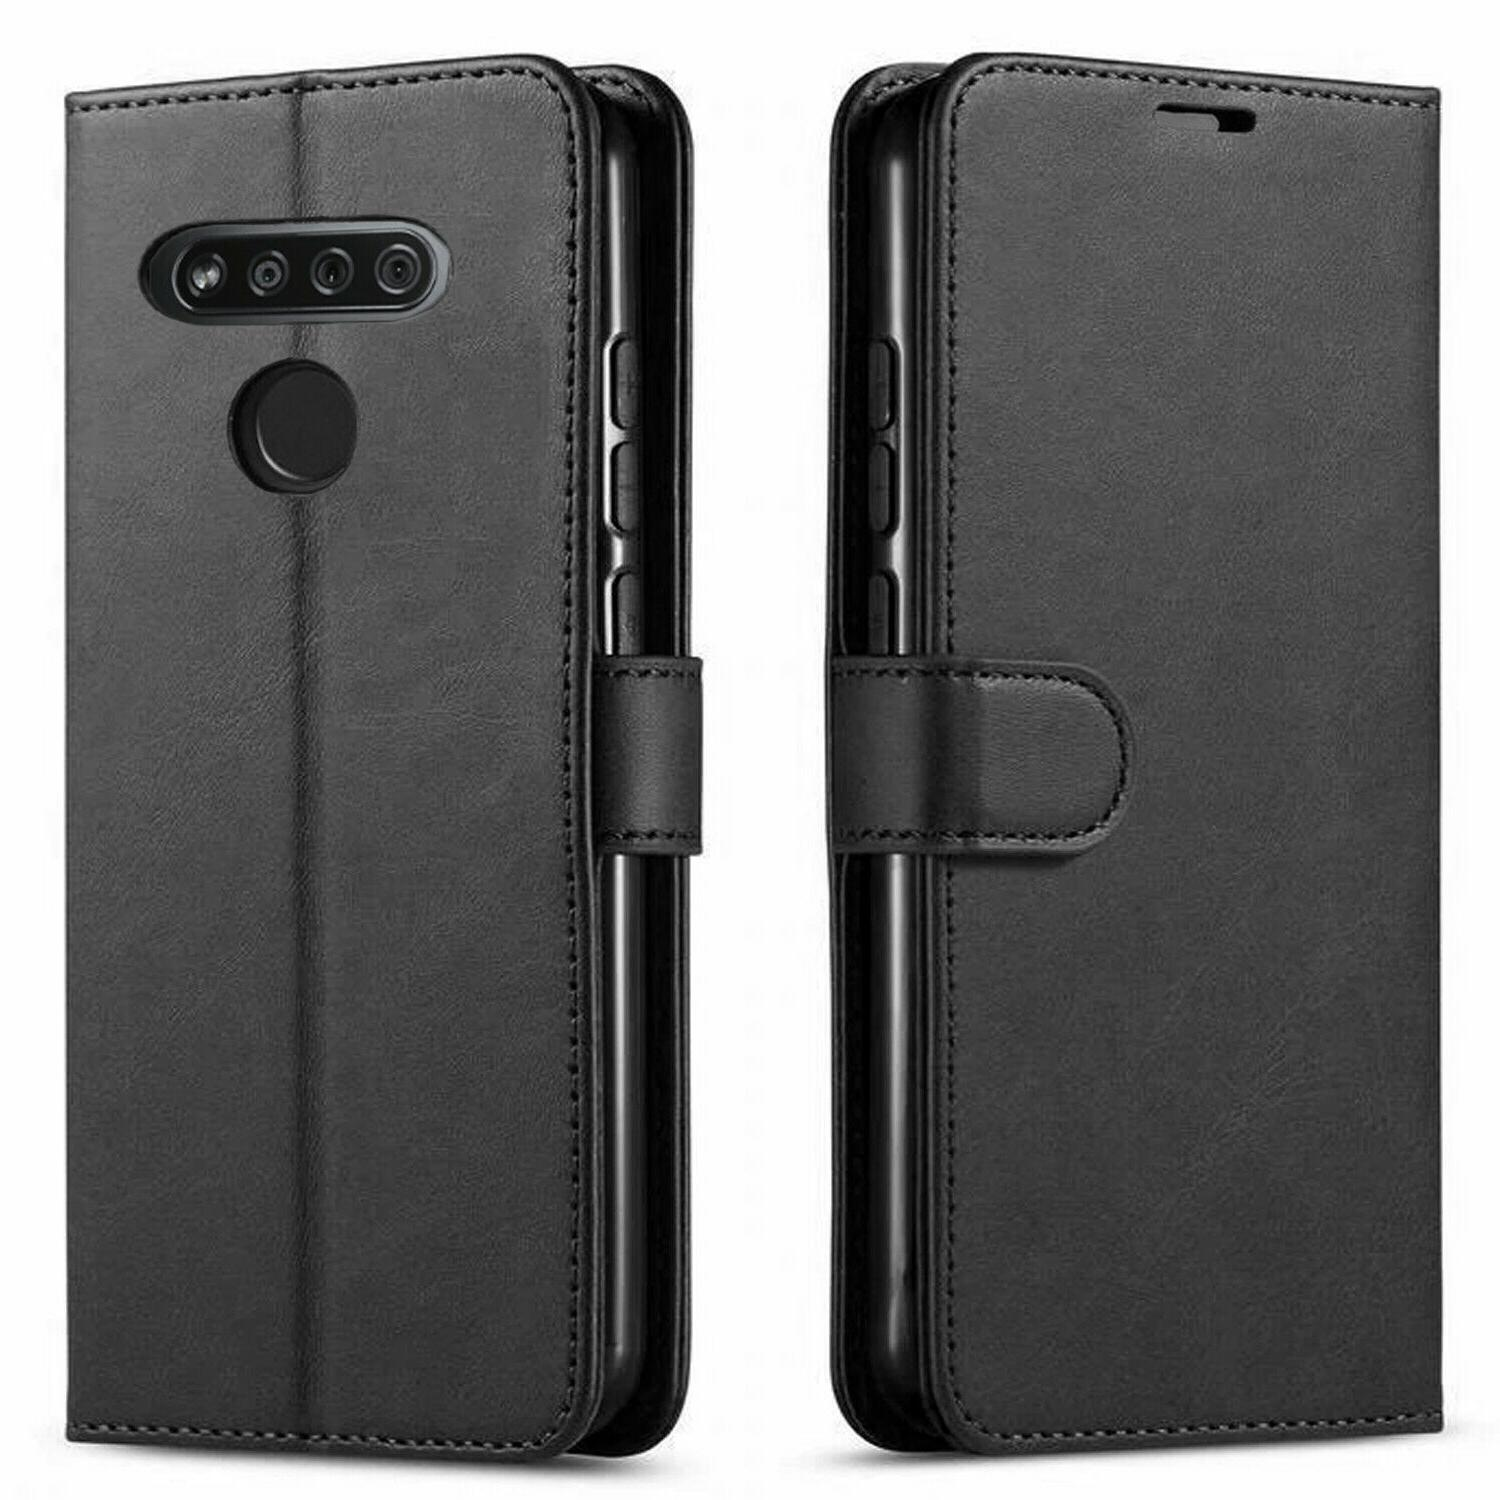 For Case, Pouch Kickstand Cover + Protector